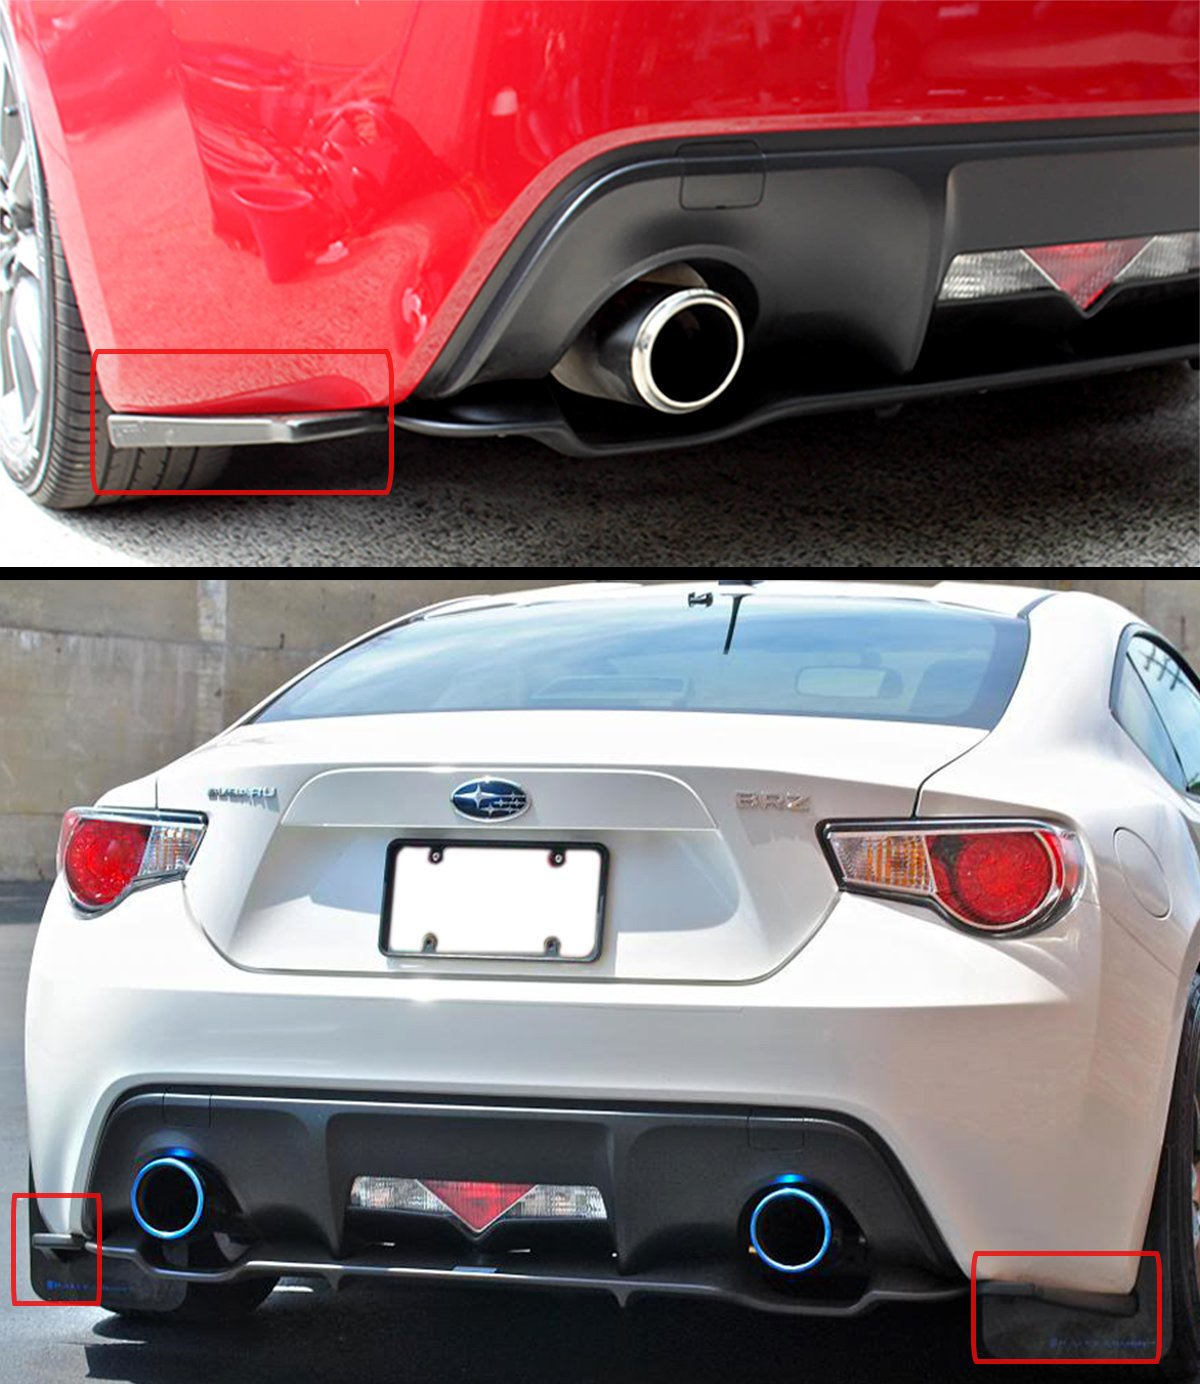 Fits for 2013-2016 Subaru BRZ /& Scion FR-S FRS 86 JDM Rear Bumper Aero Side Aprons